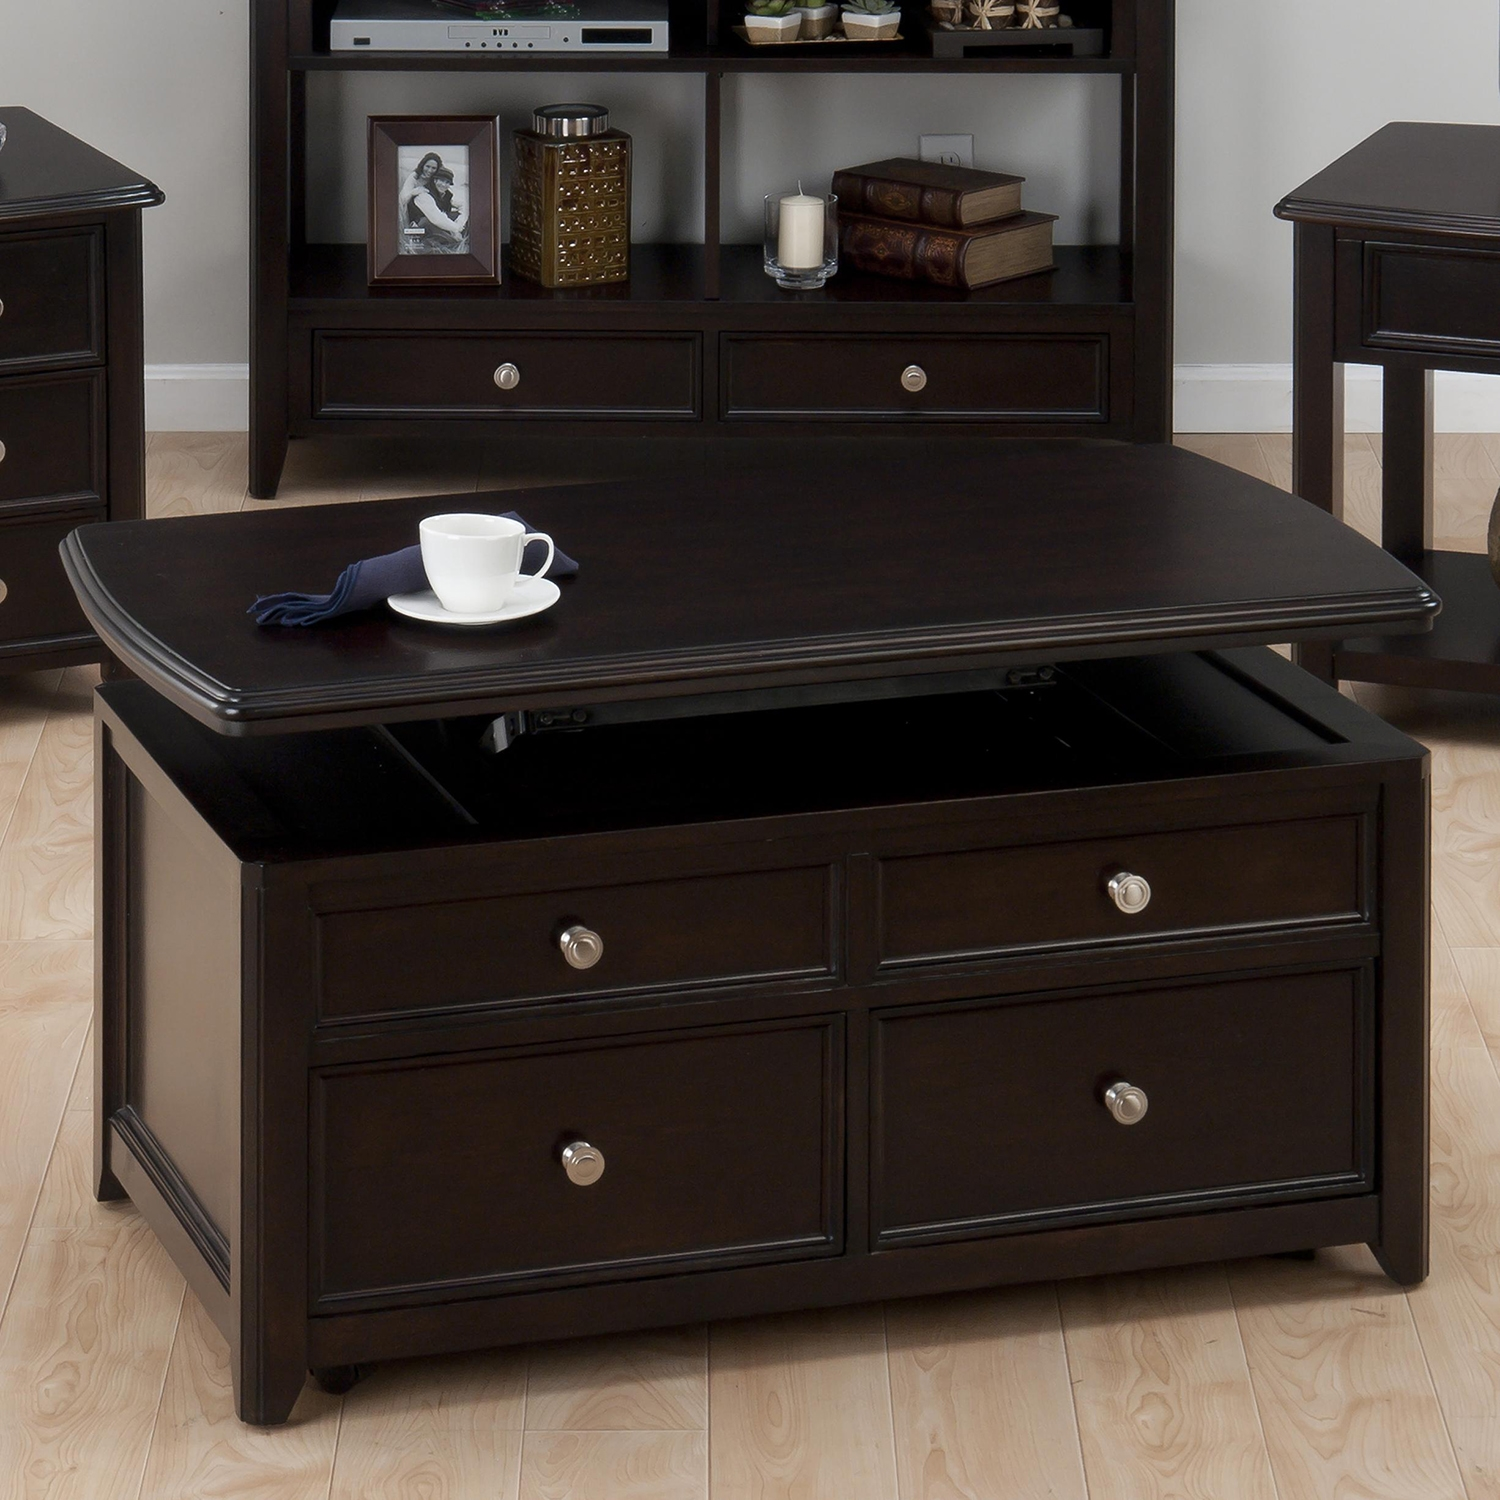 Coronado Cocktail Table - Lift Top, Espresso - JOFR-319-5